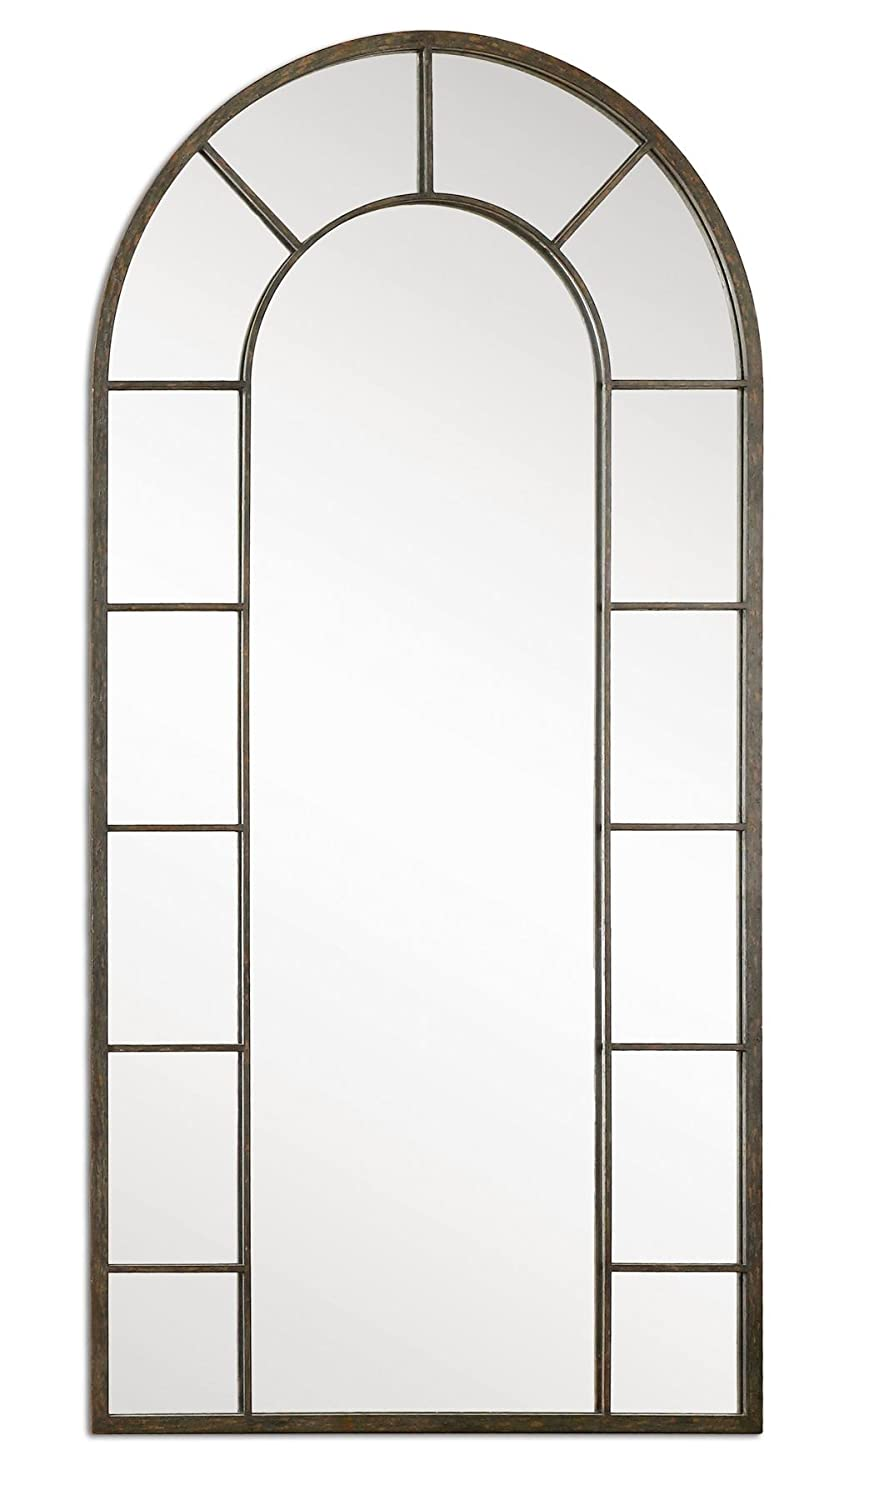 arched romantic amusing design mirror full length mirrors home wondrous of floors wall sparkley barnwood wood floor distressed on